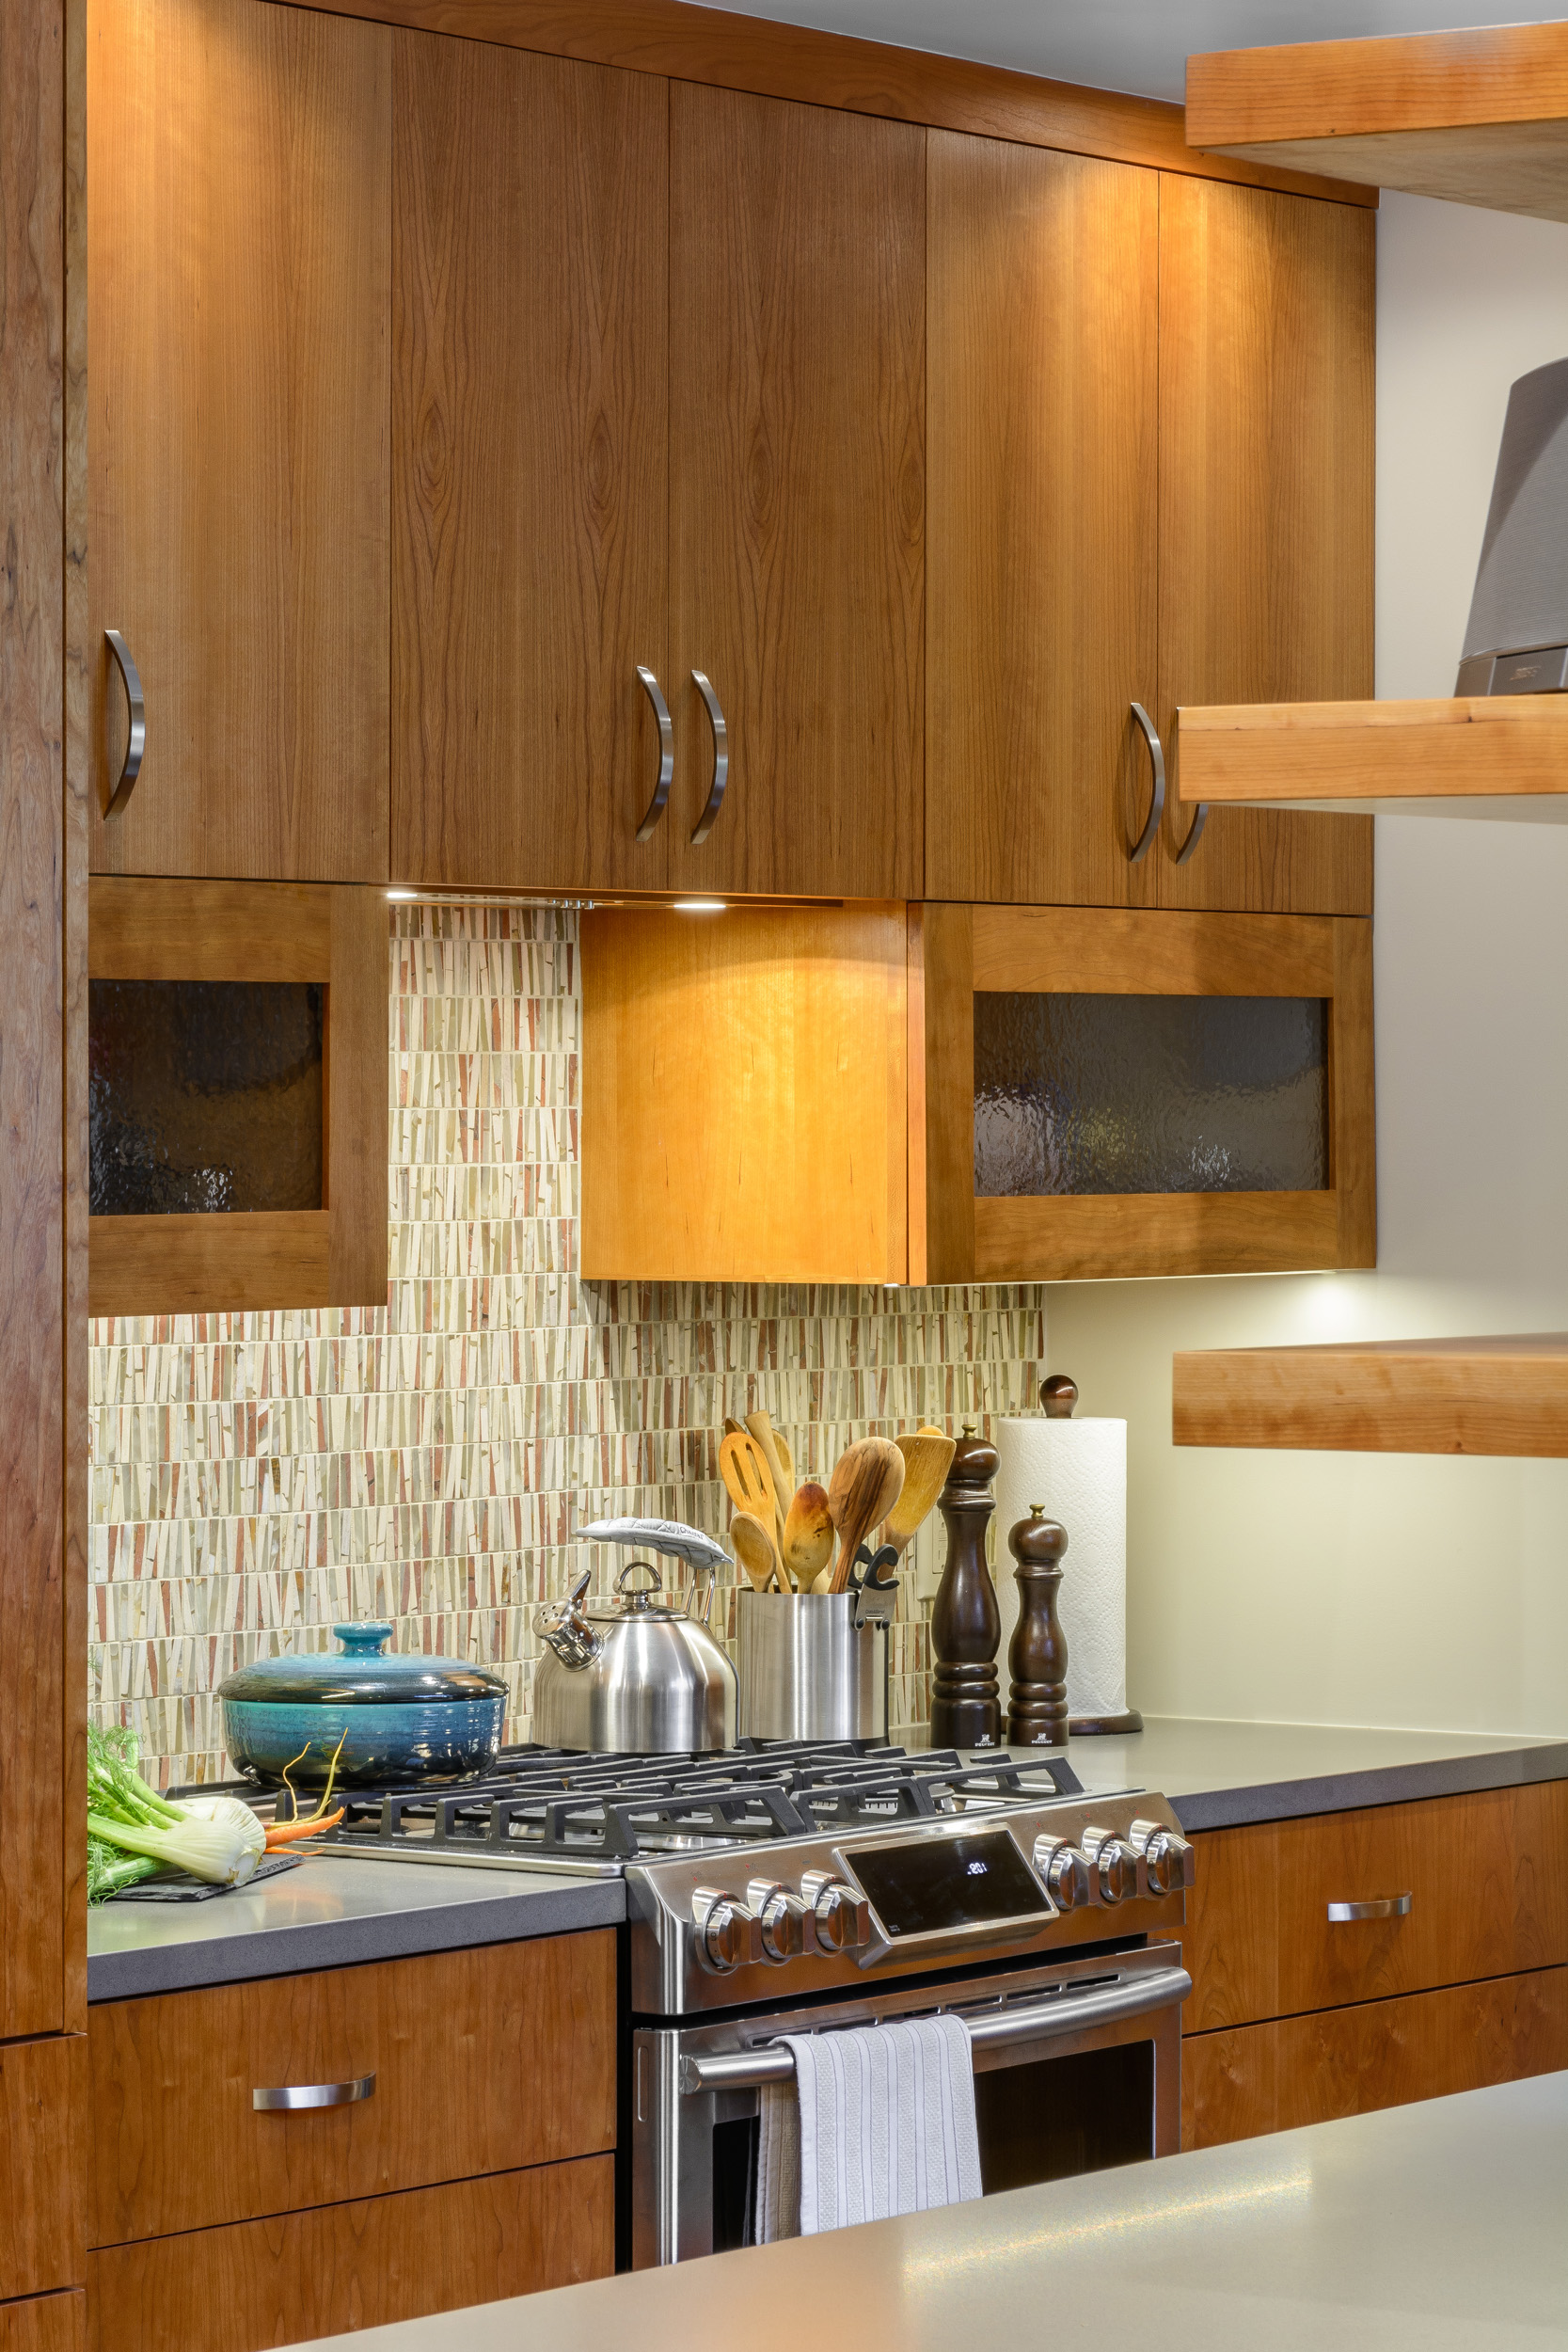 Lots of light for the cooking area of this contemporary kitchen: LED recessed lighting and under cabinet lighting in addition to natural light